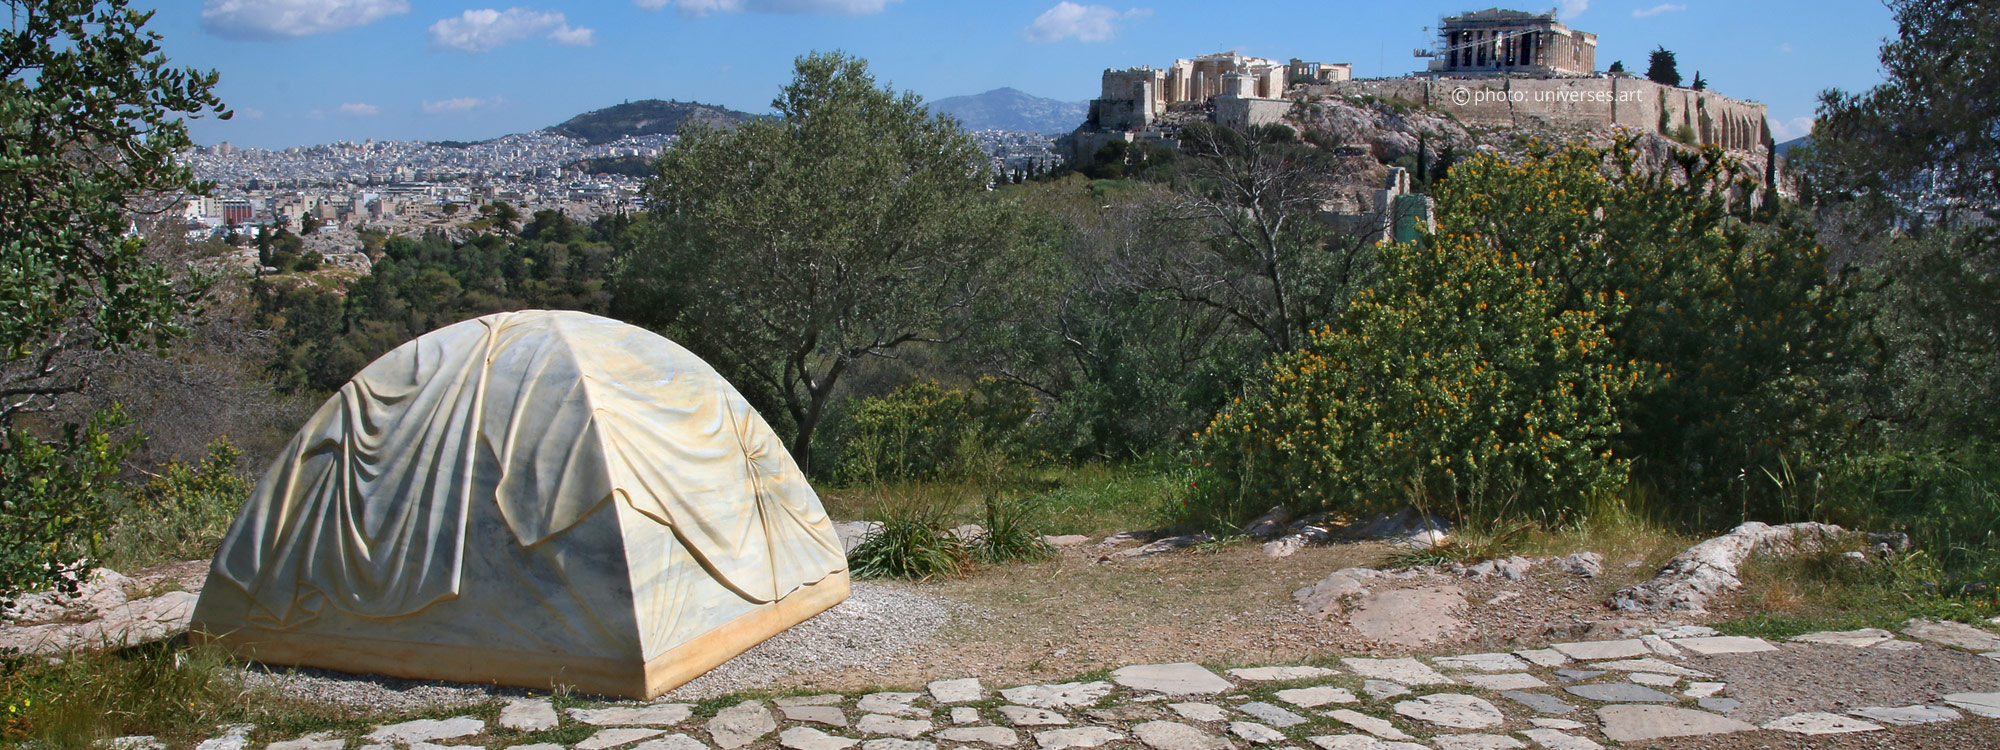 documenta 14 en Atenas